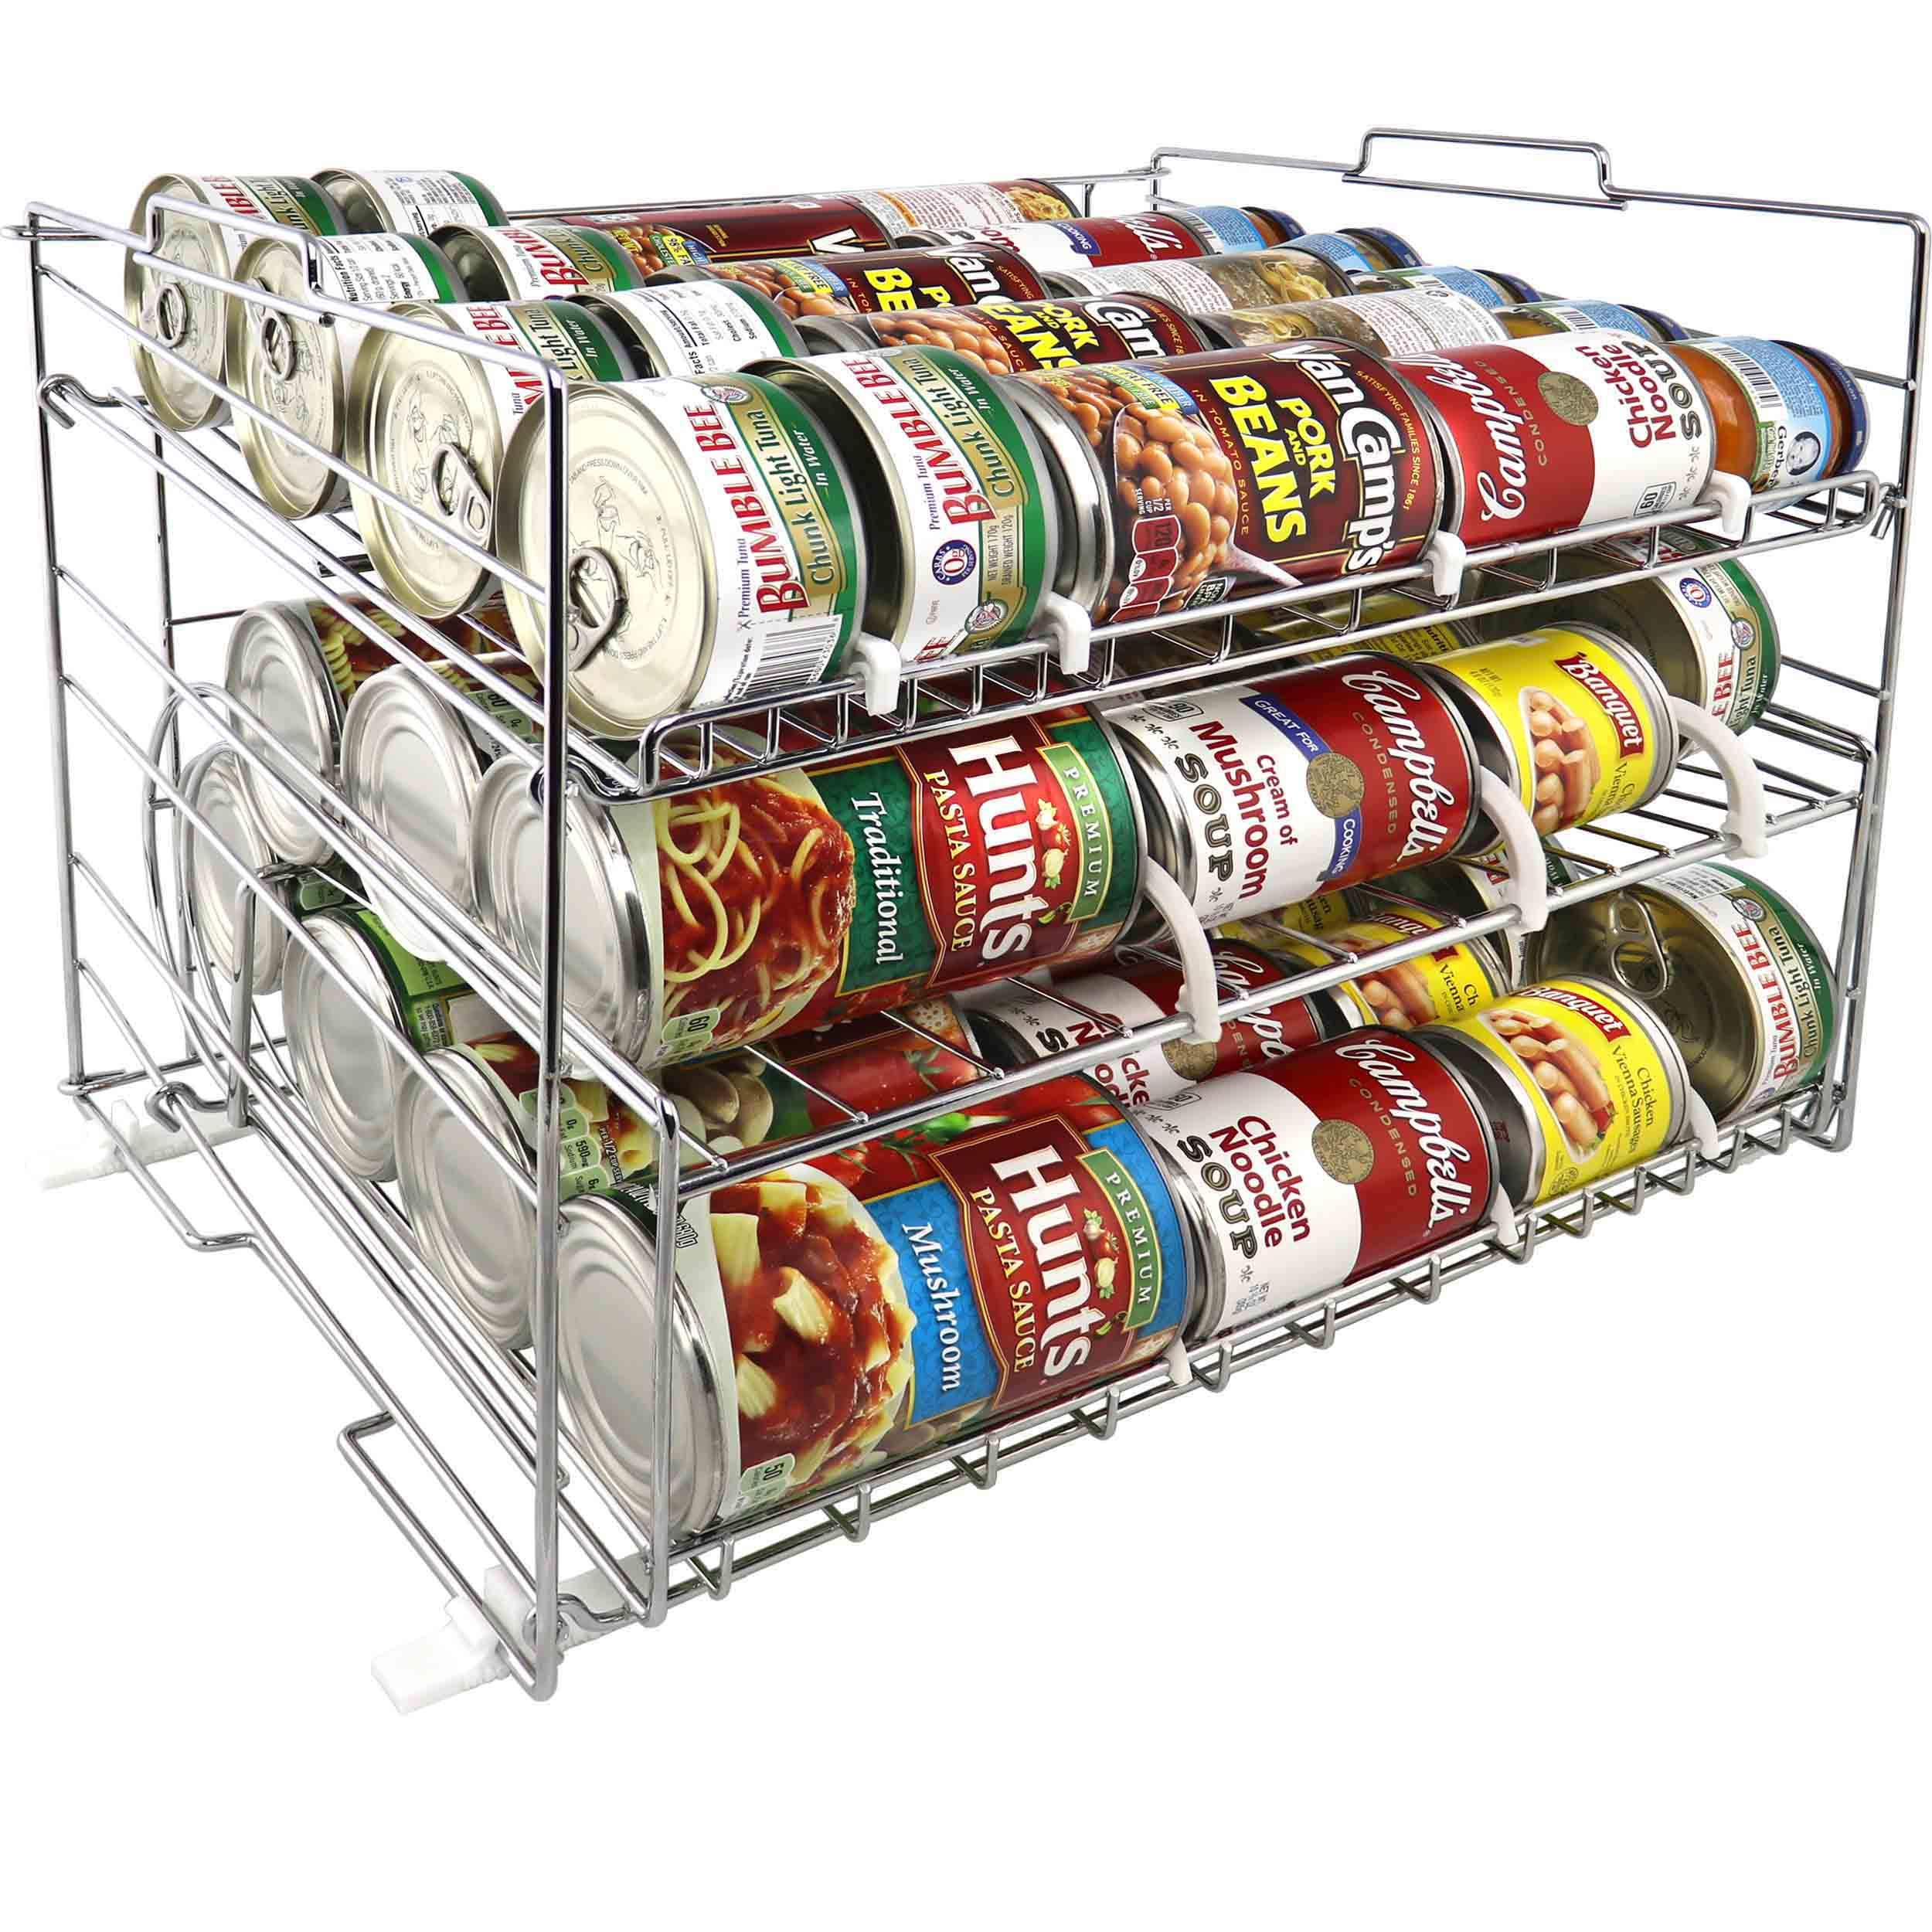 MagicCanRack 2 Unique 2018 Patent Pending Double Function Stackable Can Organizer Pantry Can Rack System, Holds More Than 50 Cans, Standard And Rotator Shelves by Spezia